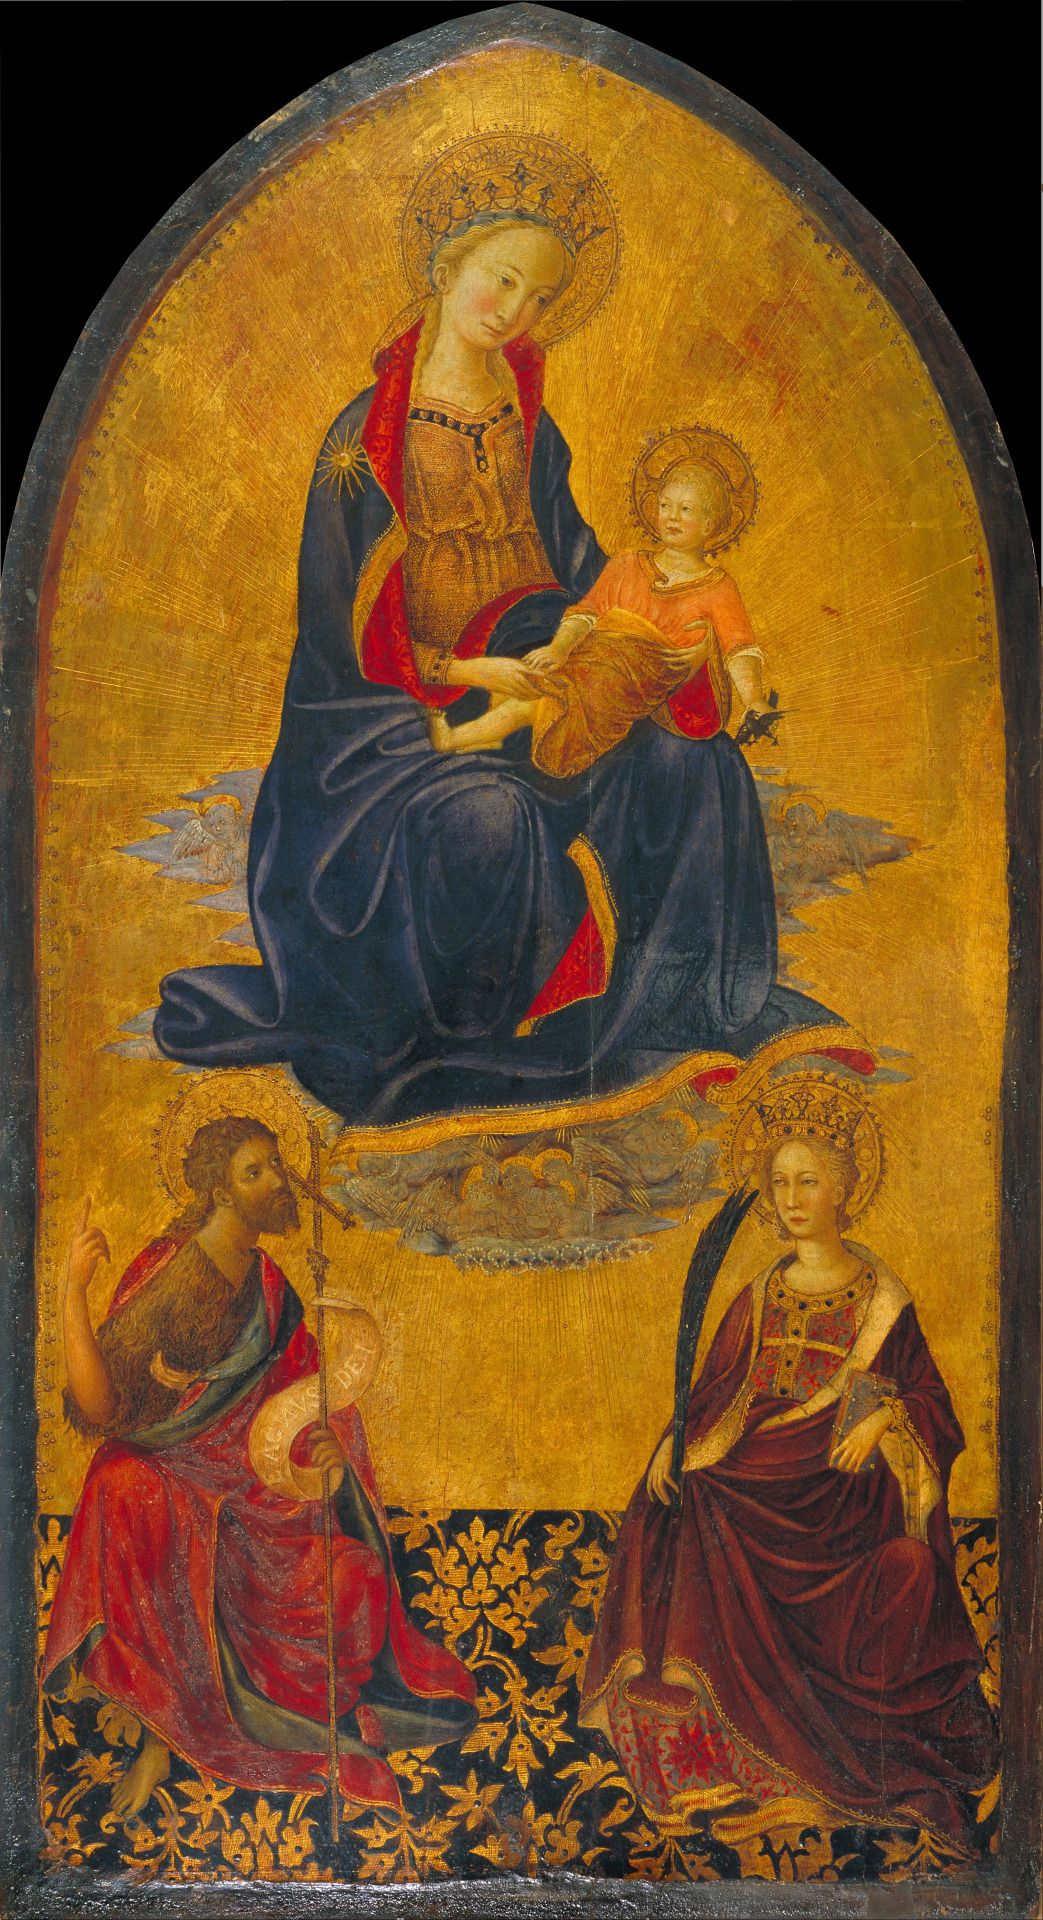 Gherardo Starnina (1354 - 1413) - Adoration of the Virgin and Child by Saint John the Baptist and Saint Catherine